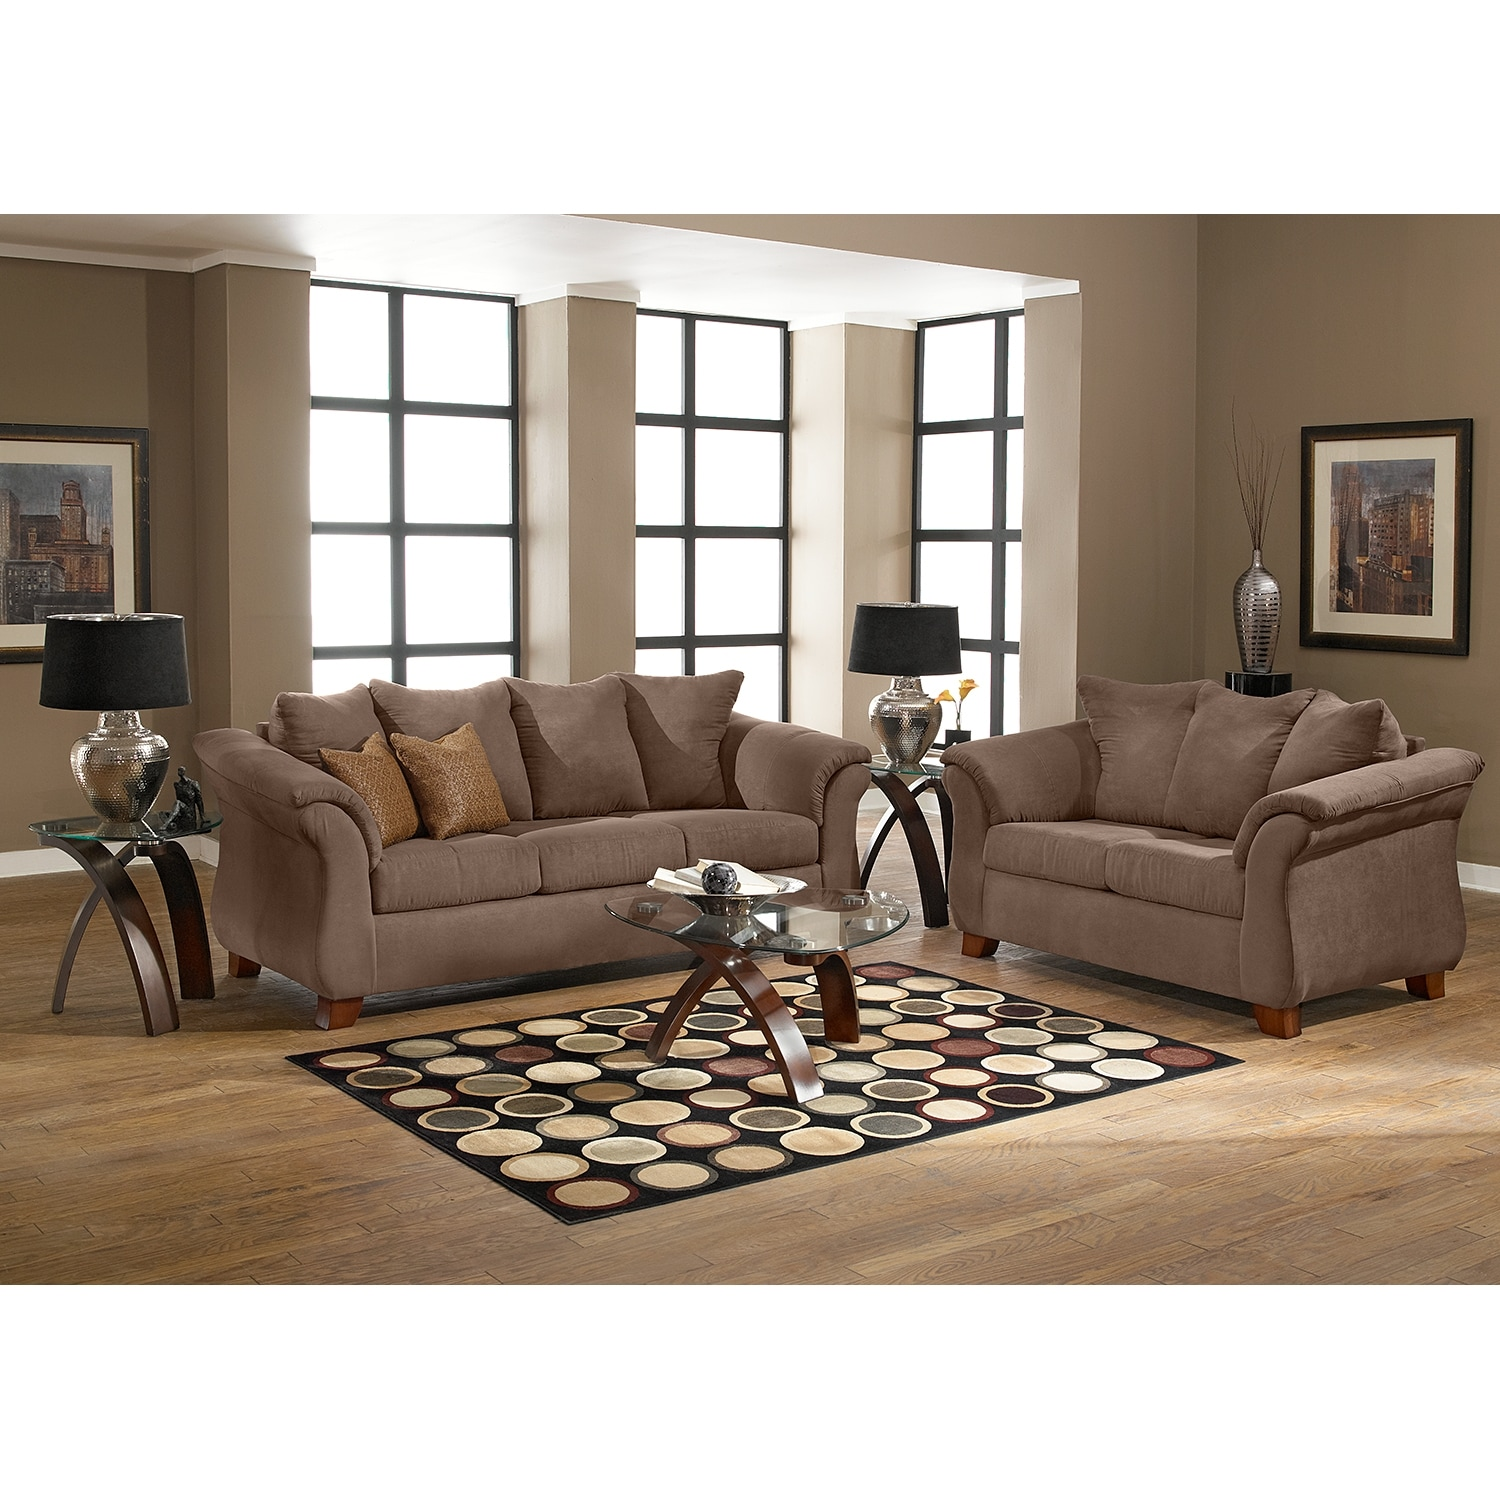 Adrian sofa taupe american signature furniture for Living room sofa